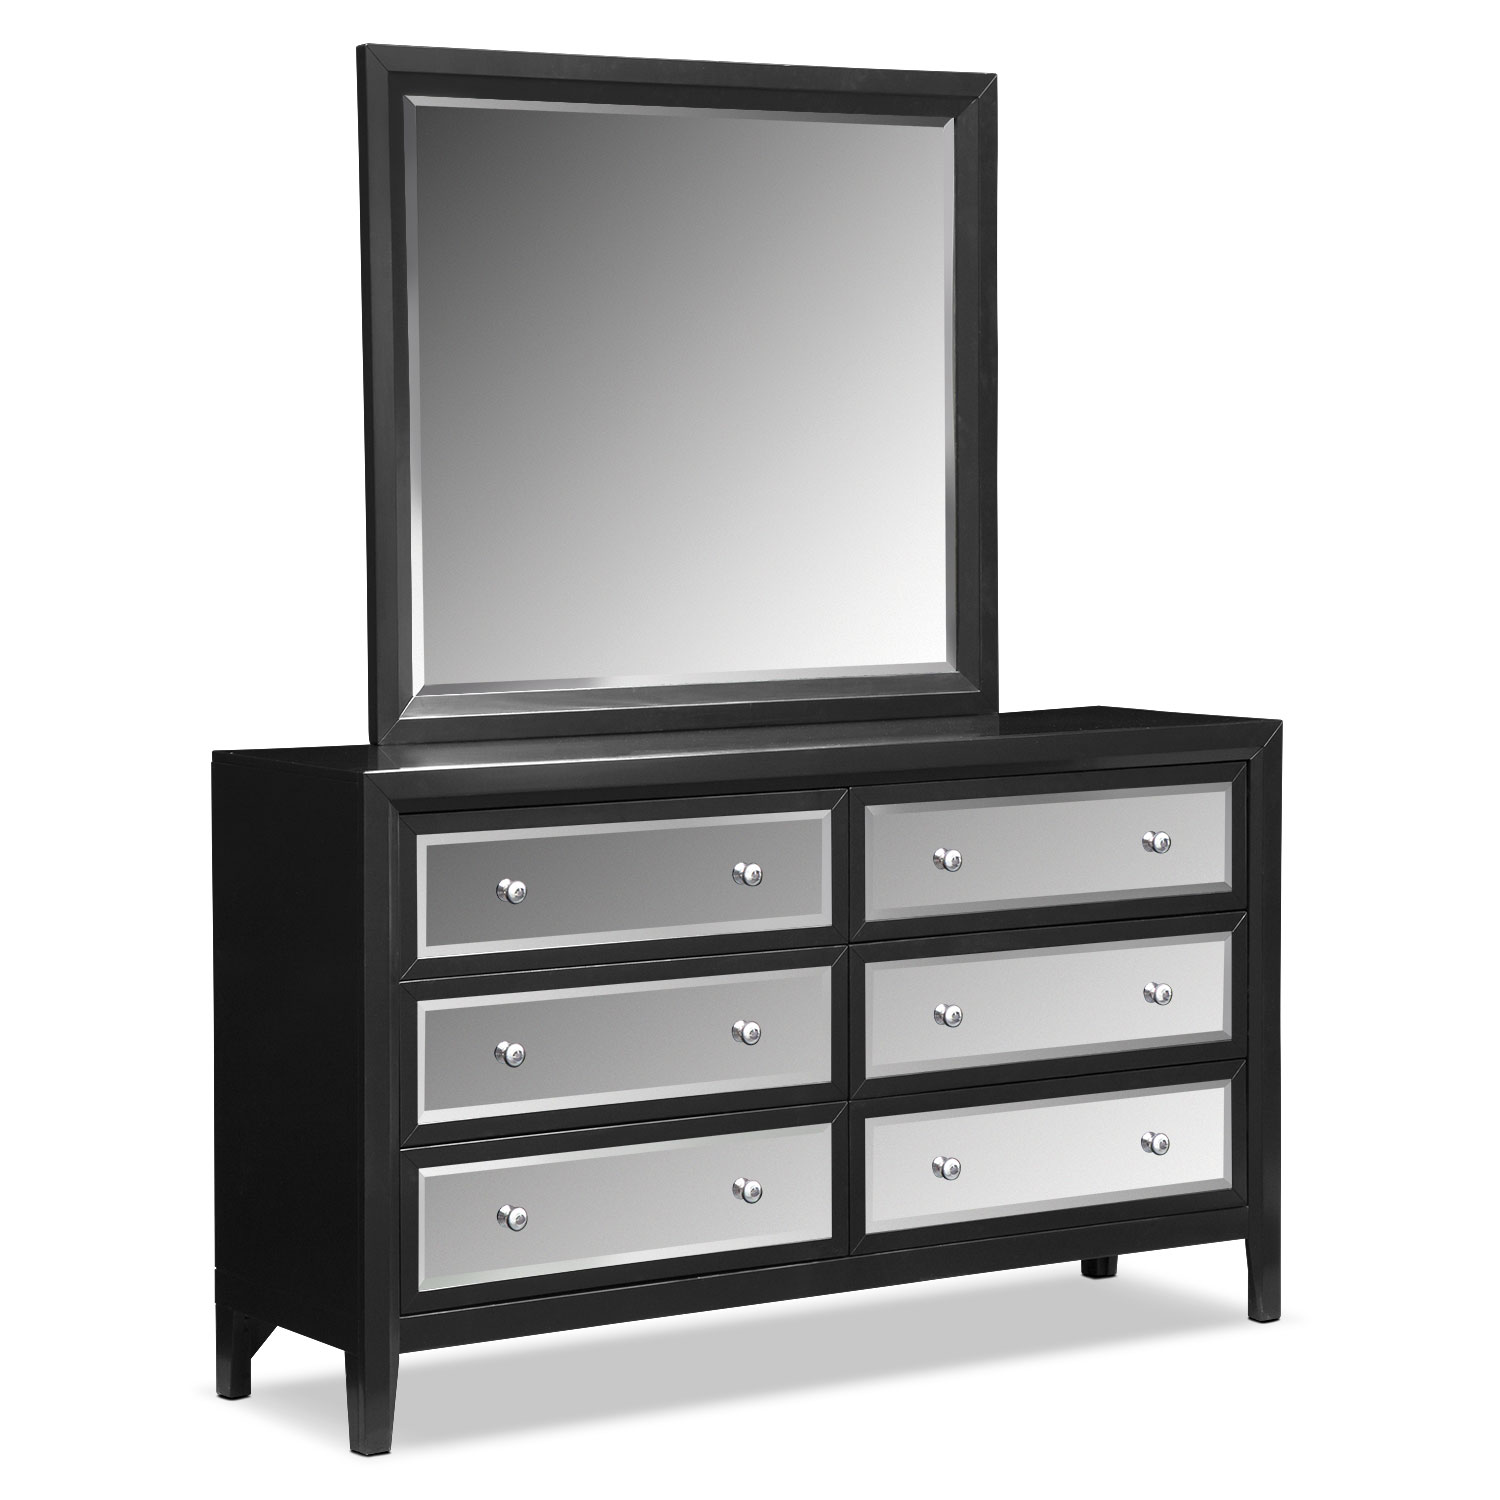 off black eight second dimensions storage hand drawer dresser